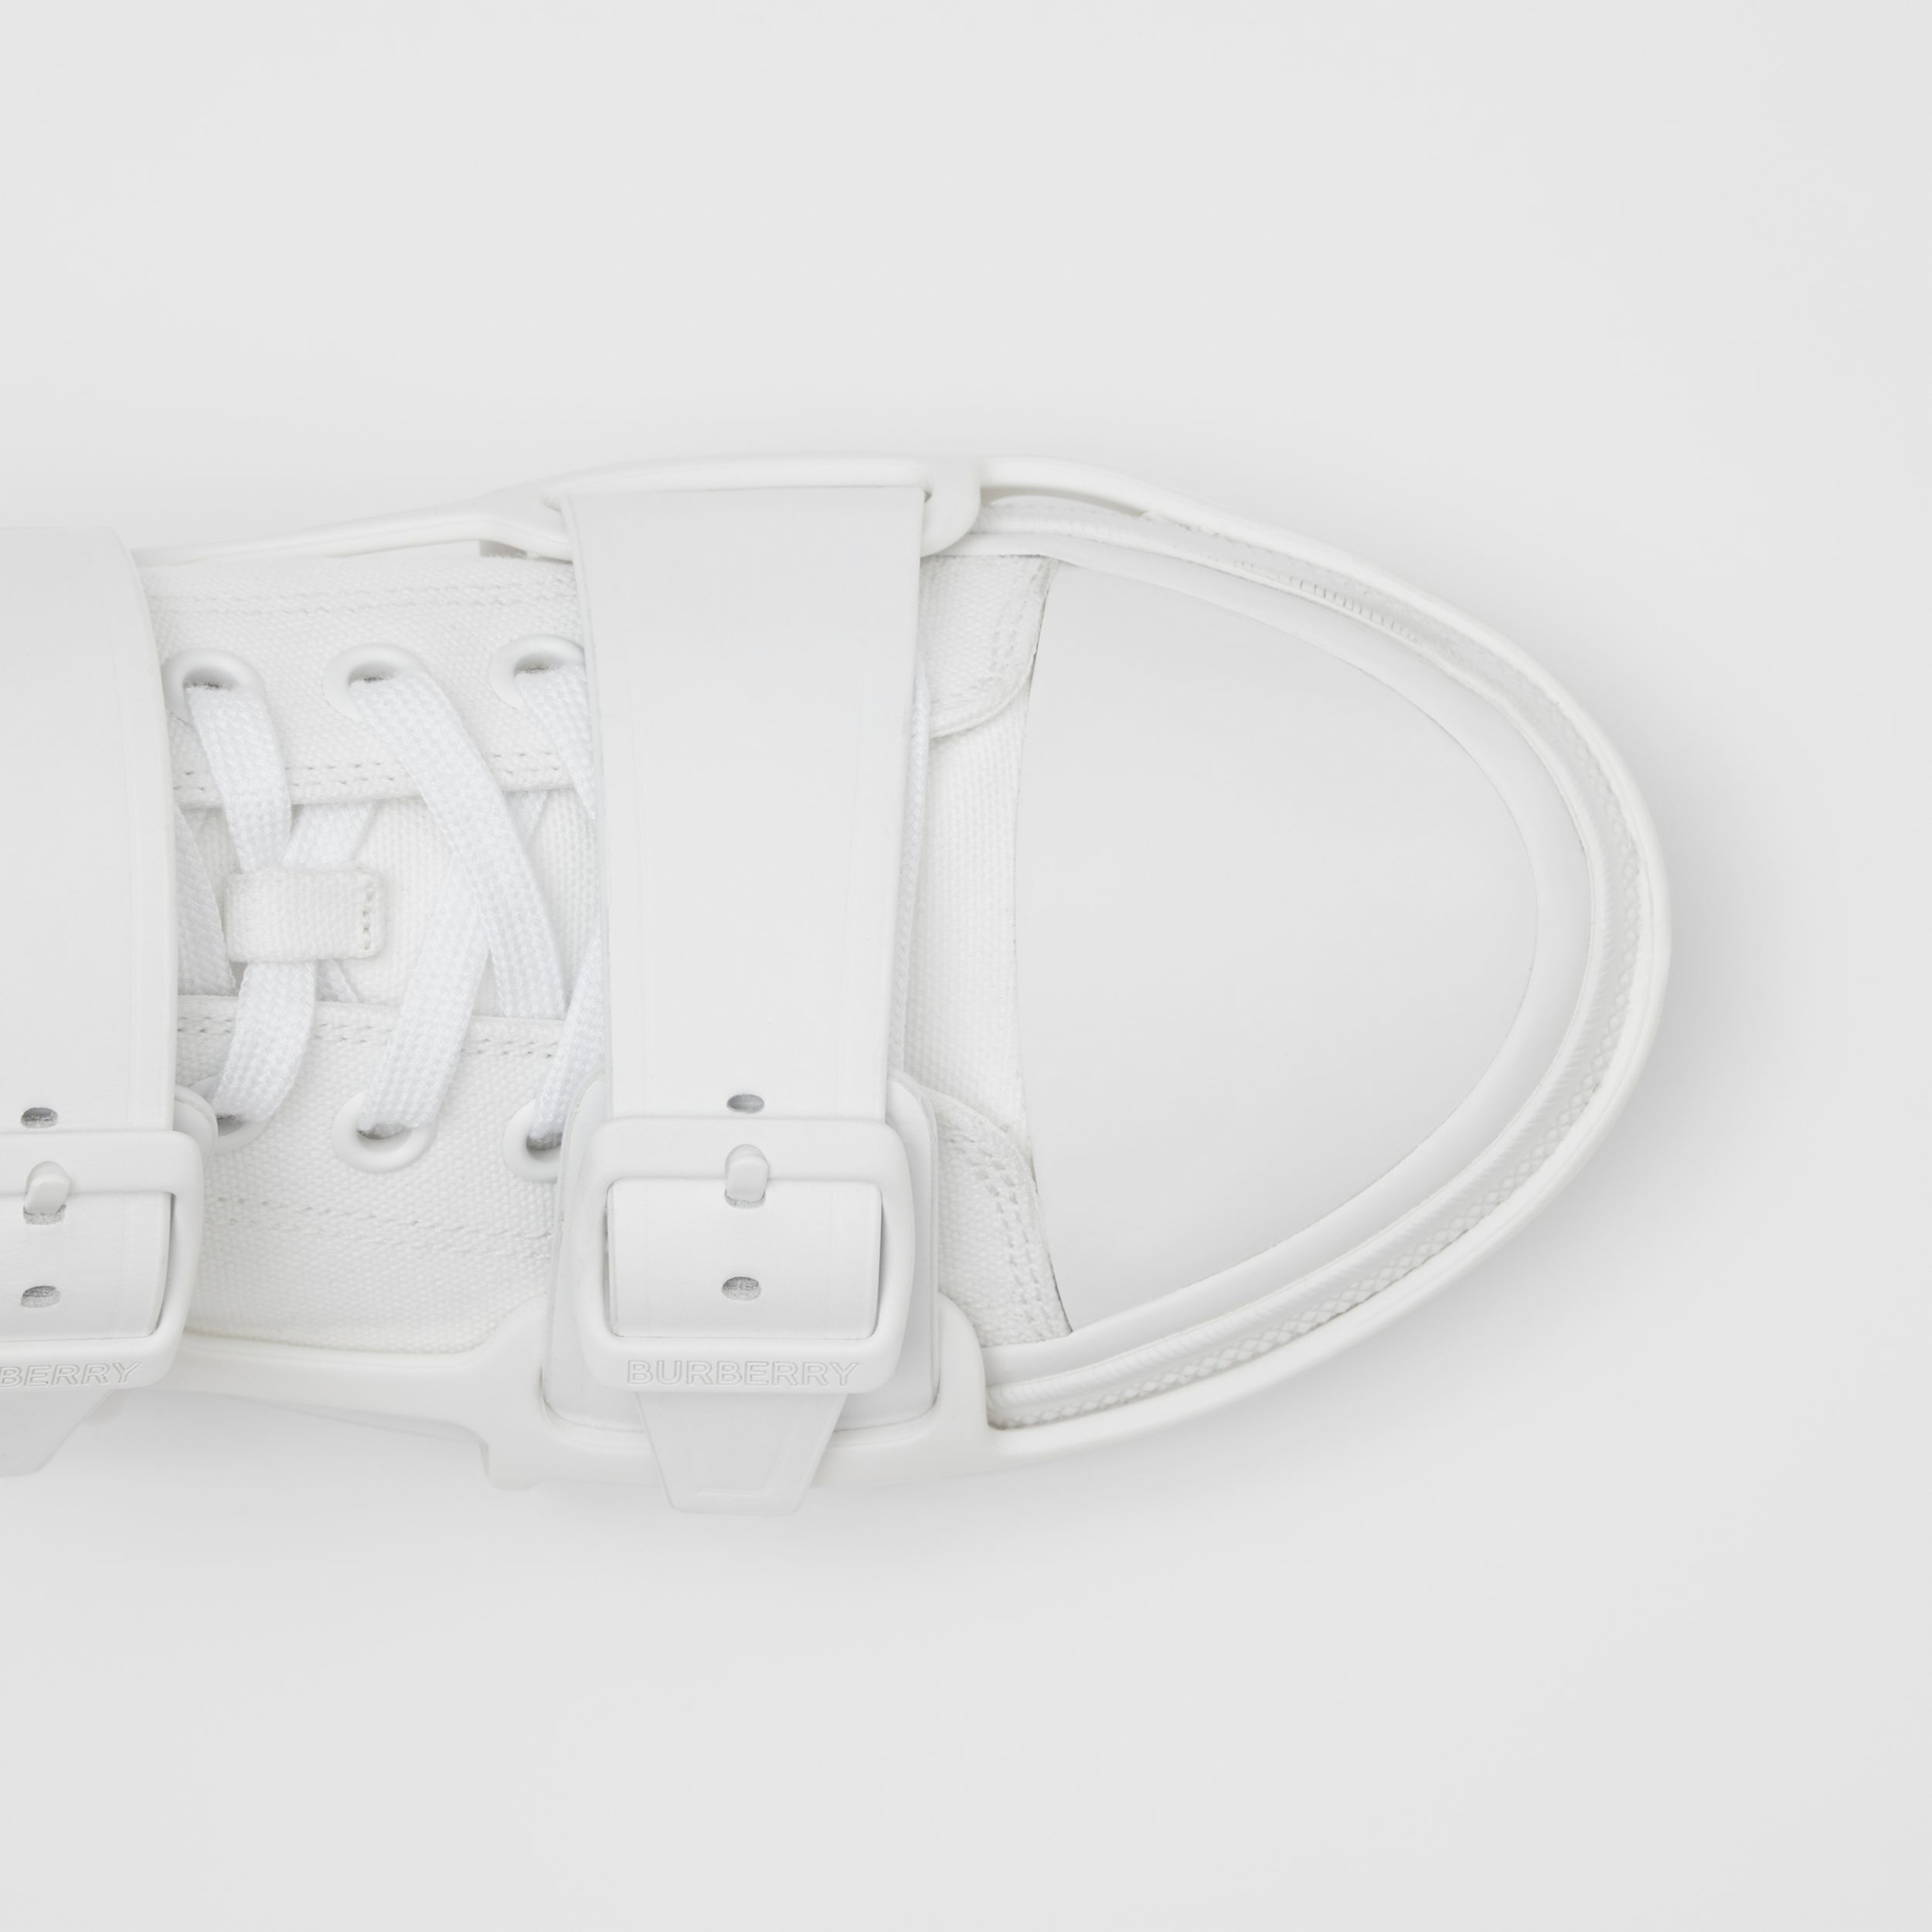 Cotton and Leather Webb Sneakers in White | Burberry - 2